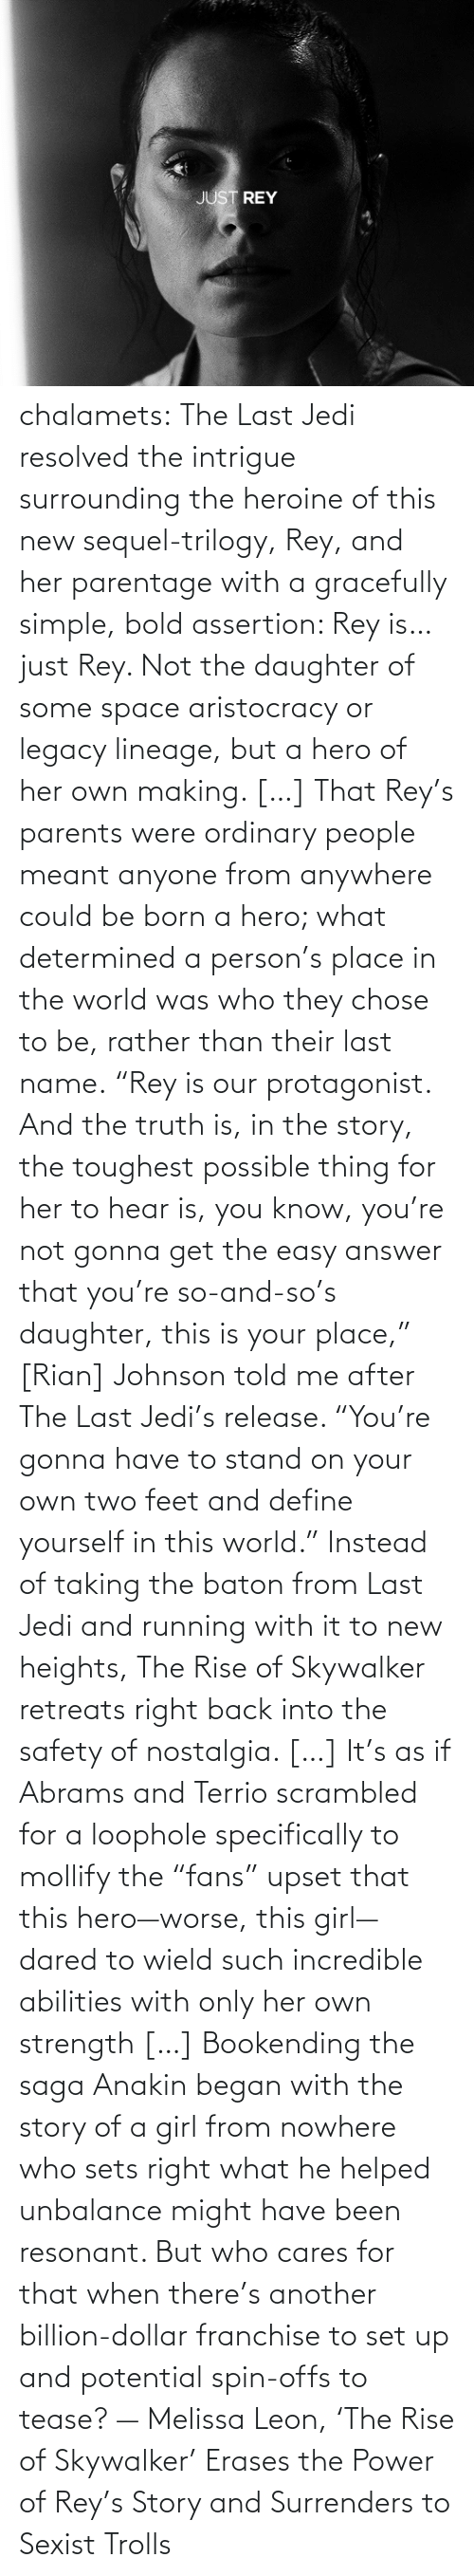 "Safety: chalamets:  The Last Jedi resolved the intrigue surrounding the heroine of this new sequel-trilogy, Rey, and her parentage with a gracefully simple, bold assertion: Rey is… just Rey. Not the daughter of some space aristocracy or legacy lineage, but a hero of her own making. […] That Rey's parents were ordinary people meant anyone from anywhere could be born a hero; what determined a person's place in the world was who they chose to be, rather than their last name. ""Rey is our protagonist. And the truth is, in the story, the toughest possible thing for her to hear is, you know, you're not gonna get the easy answer that you're so-and-so's daughter, this is your place,"" [Rian] Johnson told me after The Last Jedi's release. ""You're gonna have to stand on your own two feet and define yourself in this world."" Instead of taking the baton from Last Jedi and running with it to new heights, The Rise of Skywalker retreats right back into the safety of nostalgia. […] It's as if Abrams and Terrio scrambled for a loophole specifically to mollify the ""fans"" upset that this hero—worse, this girl—dared to wield such incredible abilities with only her own strength […] Bookending the saga Anakin began with the story of a girl from nowhere who sets right what he helped unbalance might have been resonant. But who cares for that when there's another billion-dollar franchise to set up and potential spin-offs to tease? — Melissa Leon, 'The Rise of Skywalker' Erases the Power of Rey's Story and Surrenders to Sexist Trolls"